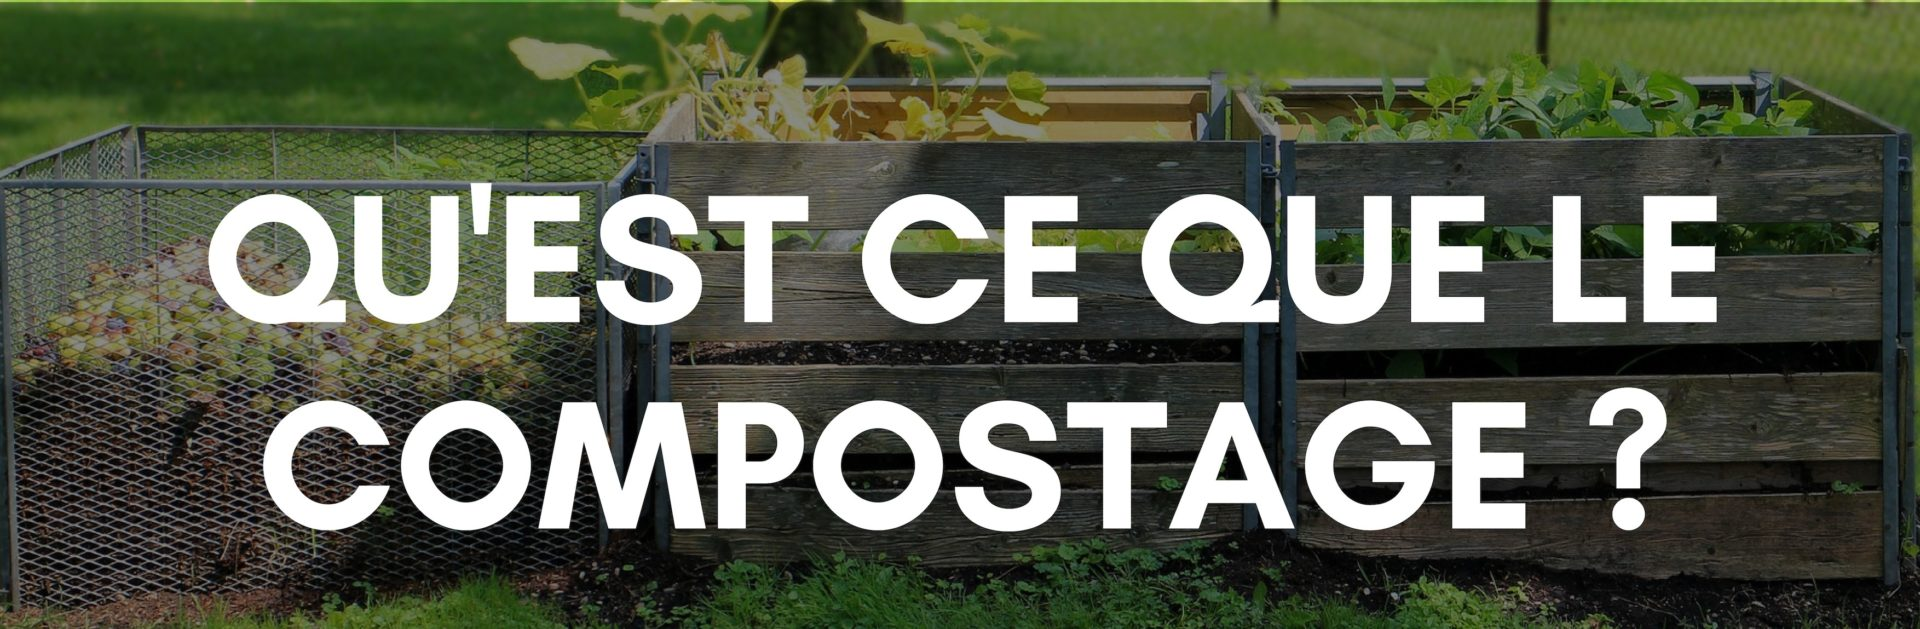 compostage-2